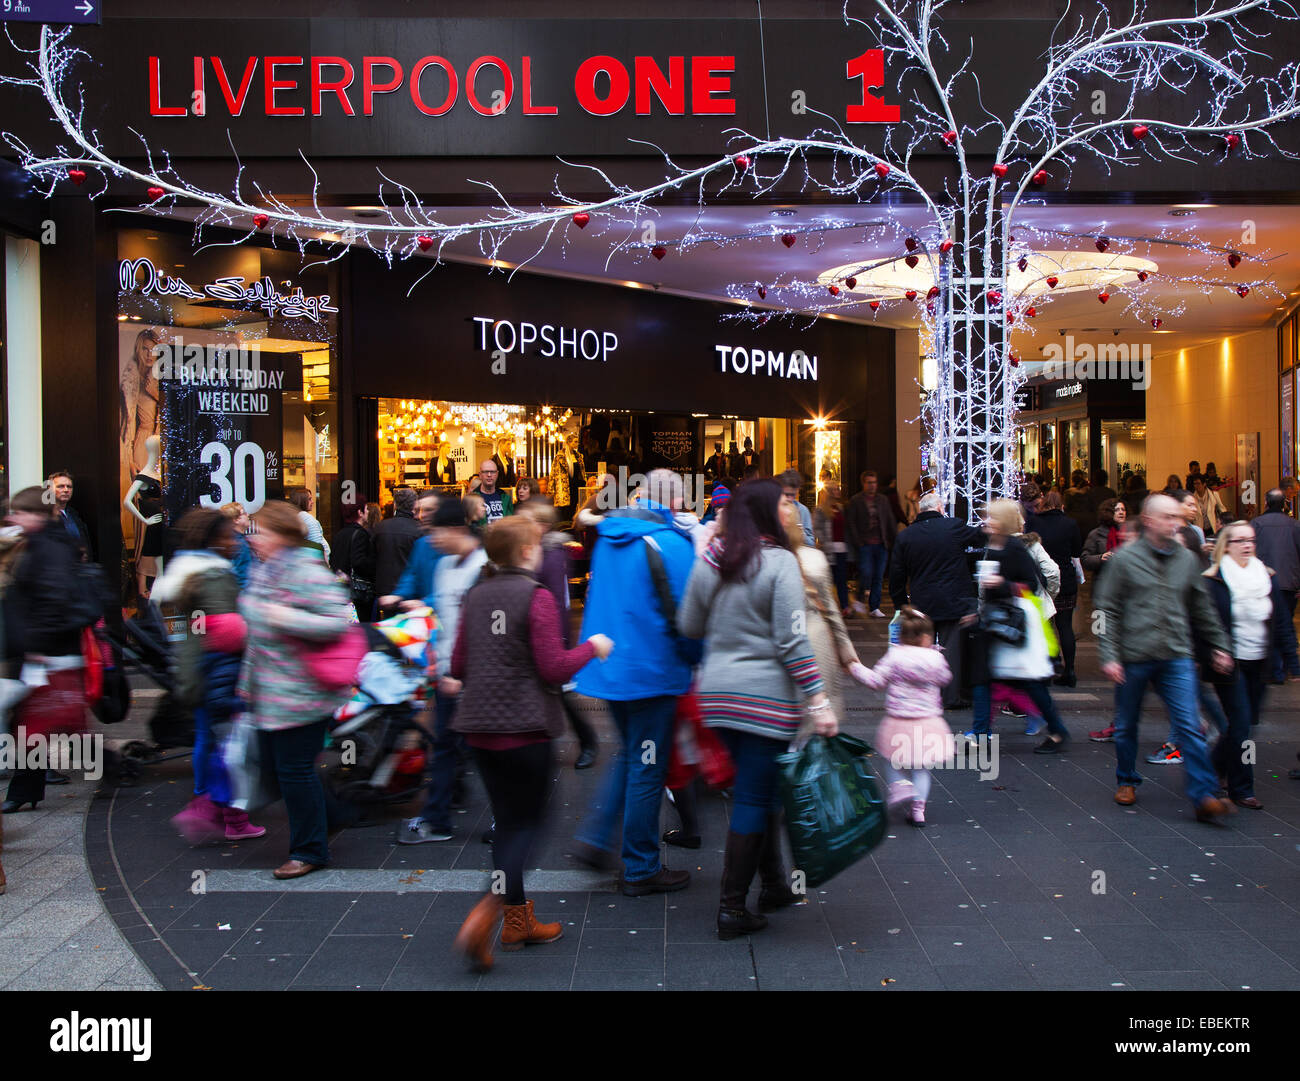 Liverpool, 29th November, 2014  Liverpool One Topshop